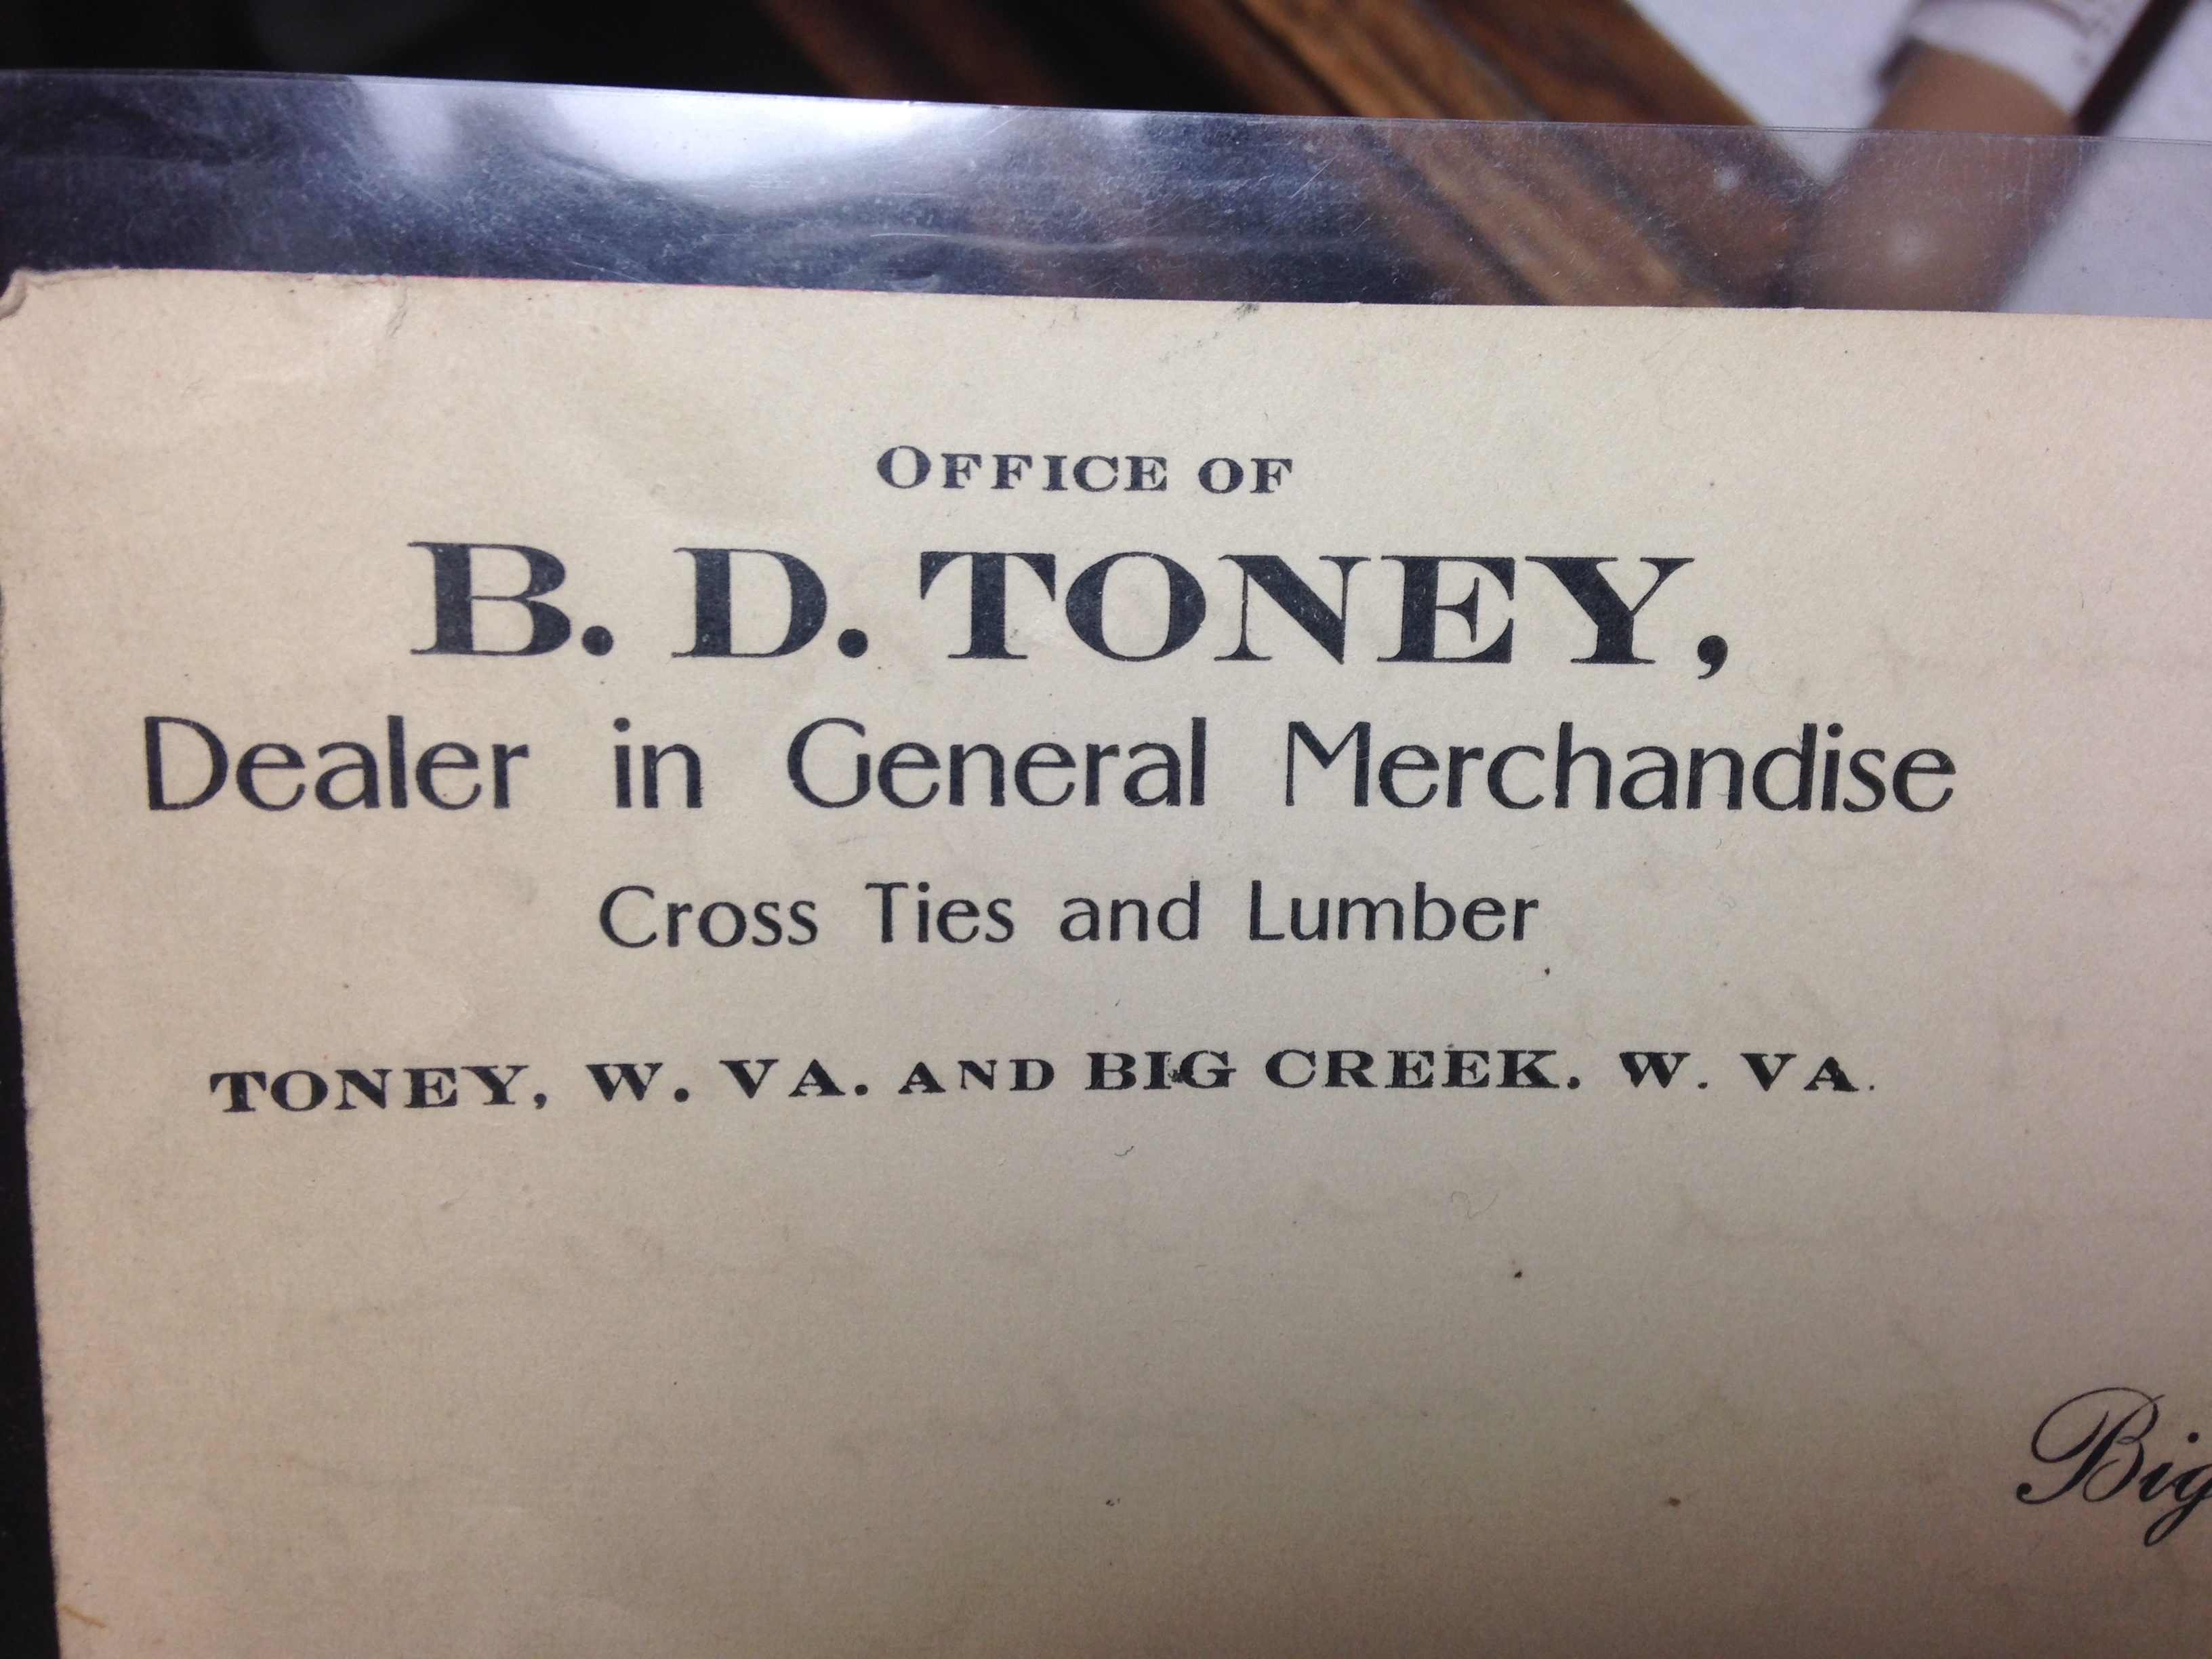 B.D. Toney Stationery.JPG